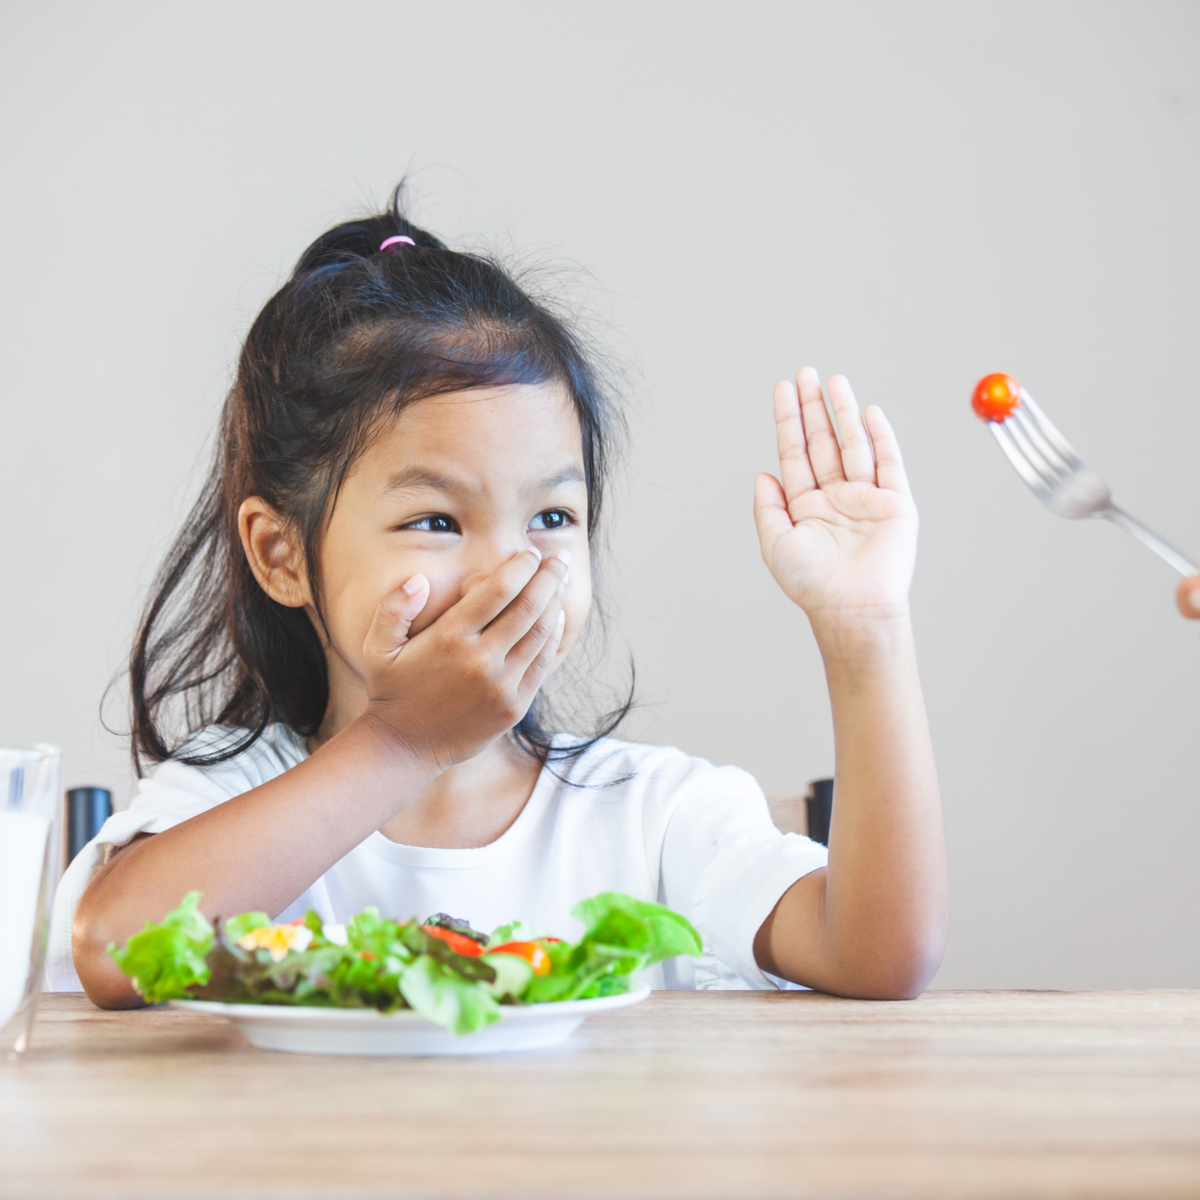 Reasons for picky eating